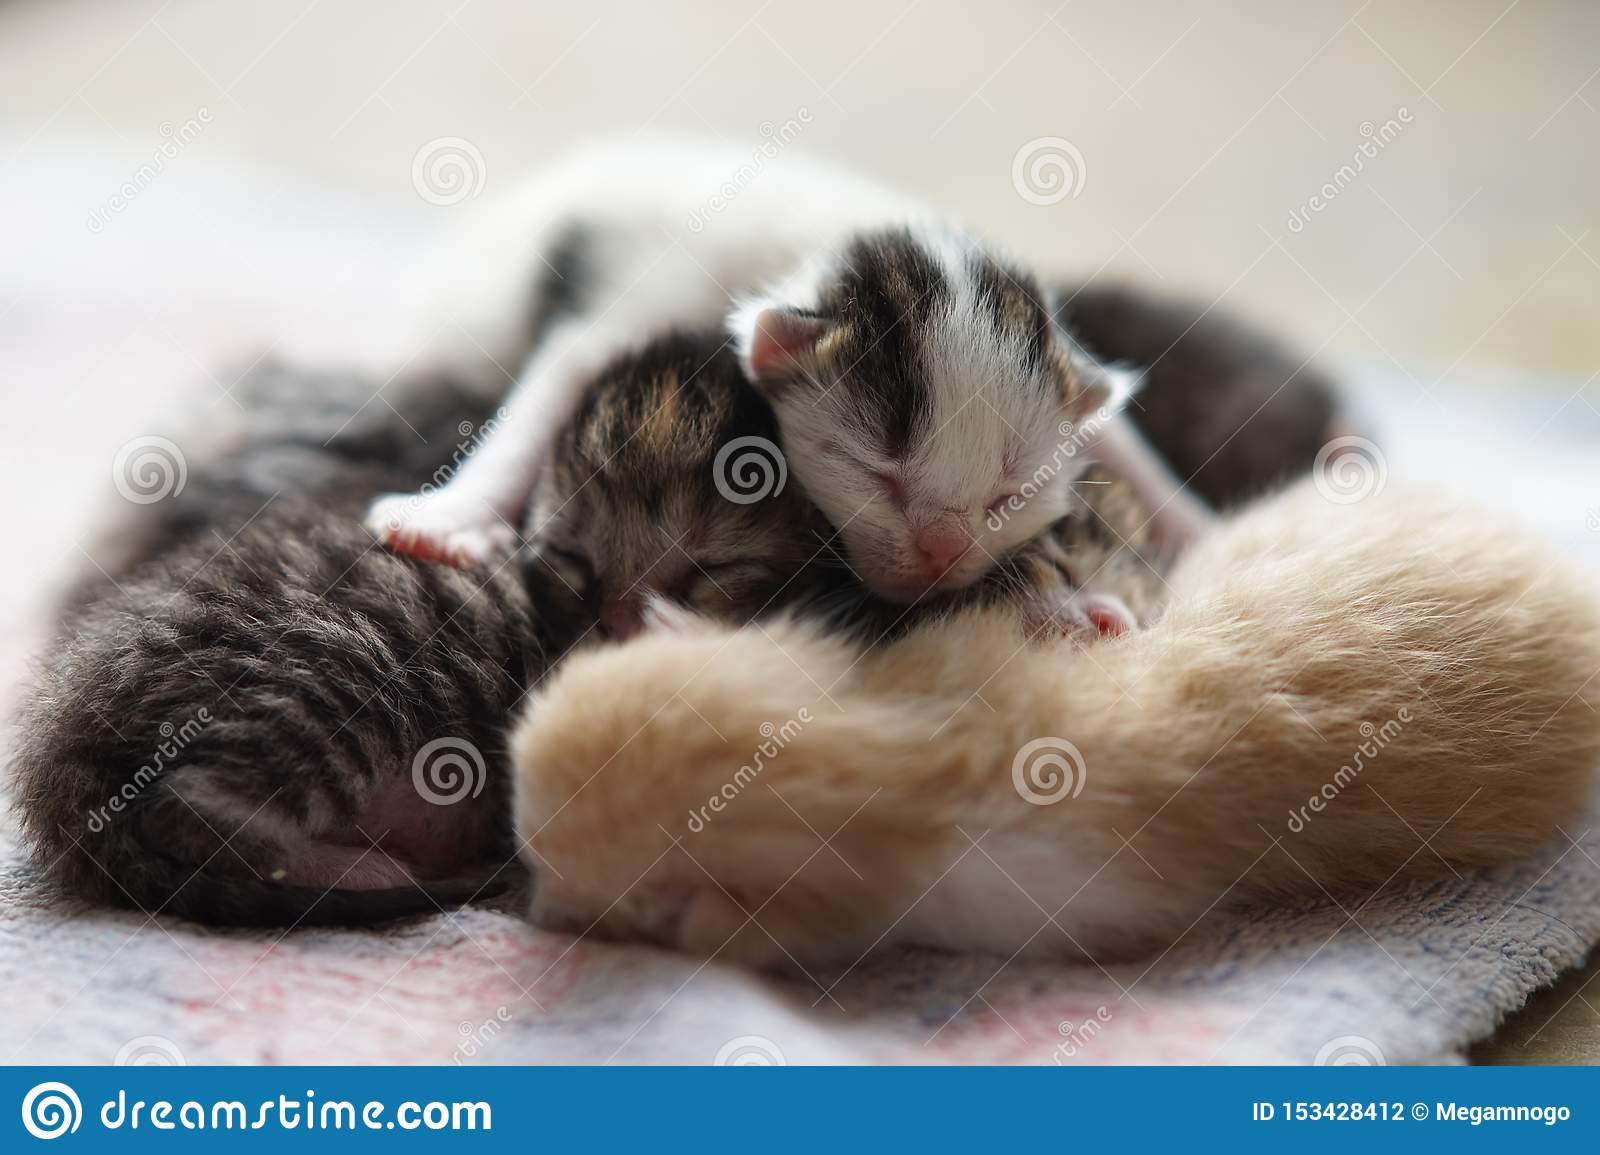 86 261 Cute Baby Animals Photos Free Royalty Free Stock Photos From Dreamstime